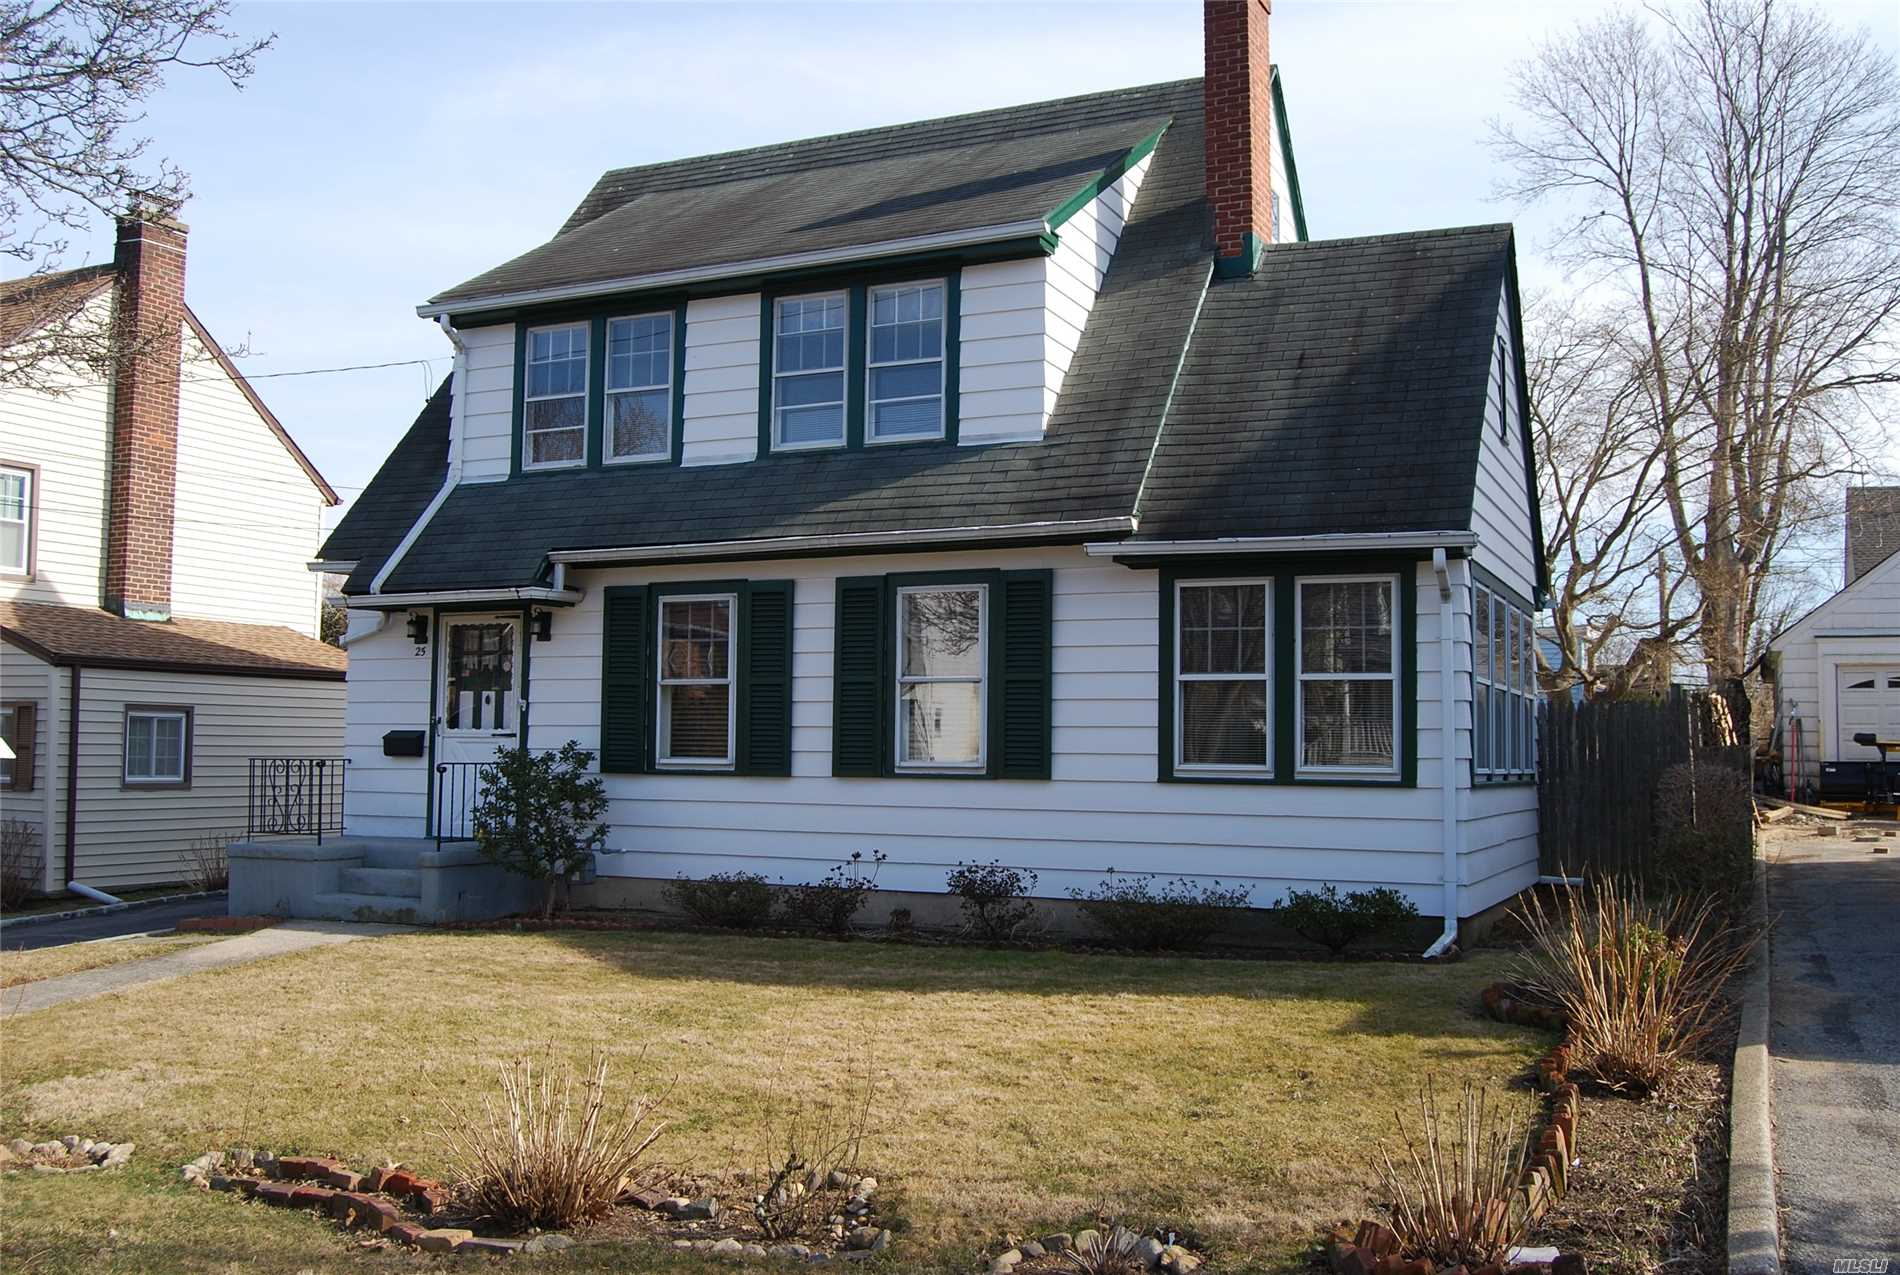 A charming 3 bedroom Colonial with 2.5 baths, Living Room with Fireplace, Formal Dining Room, Kitchen, Office, 2 car garage and private yard.